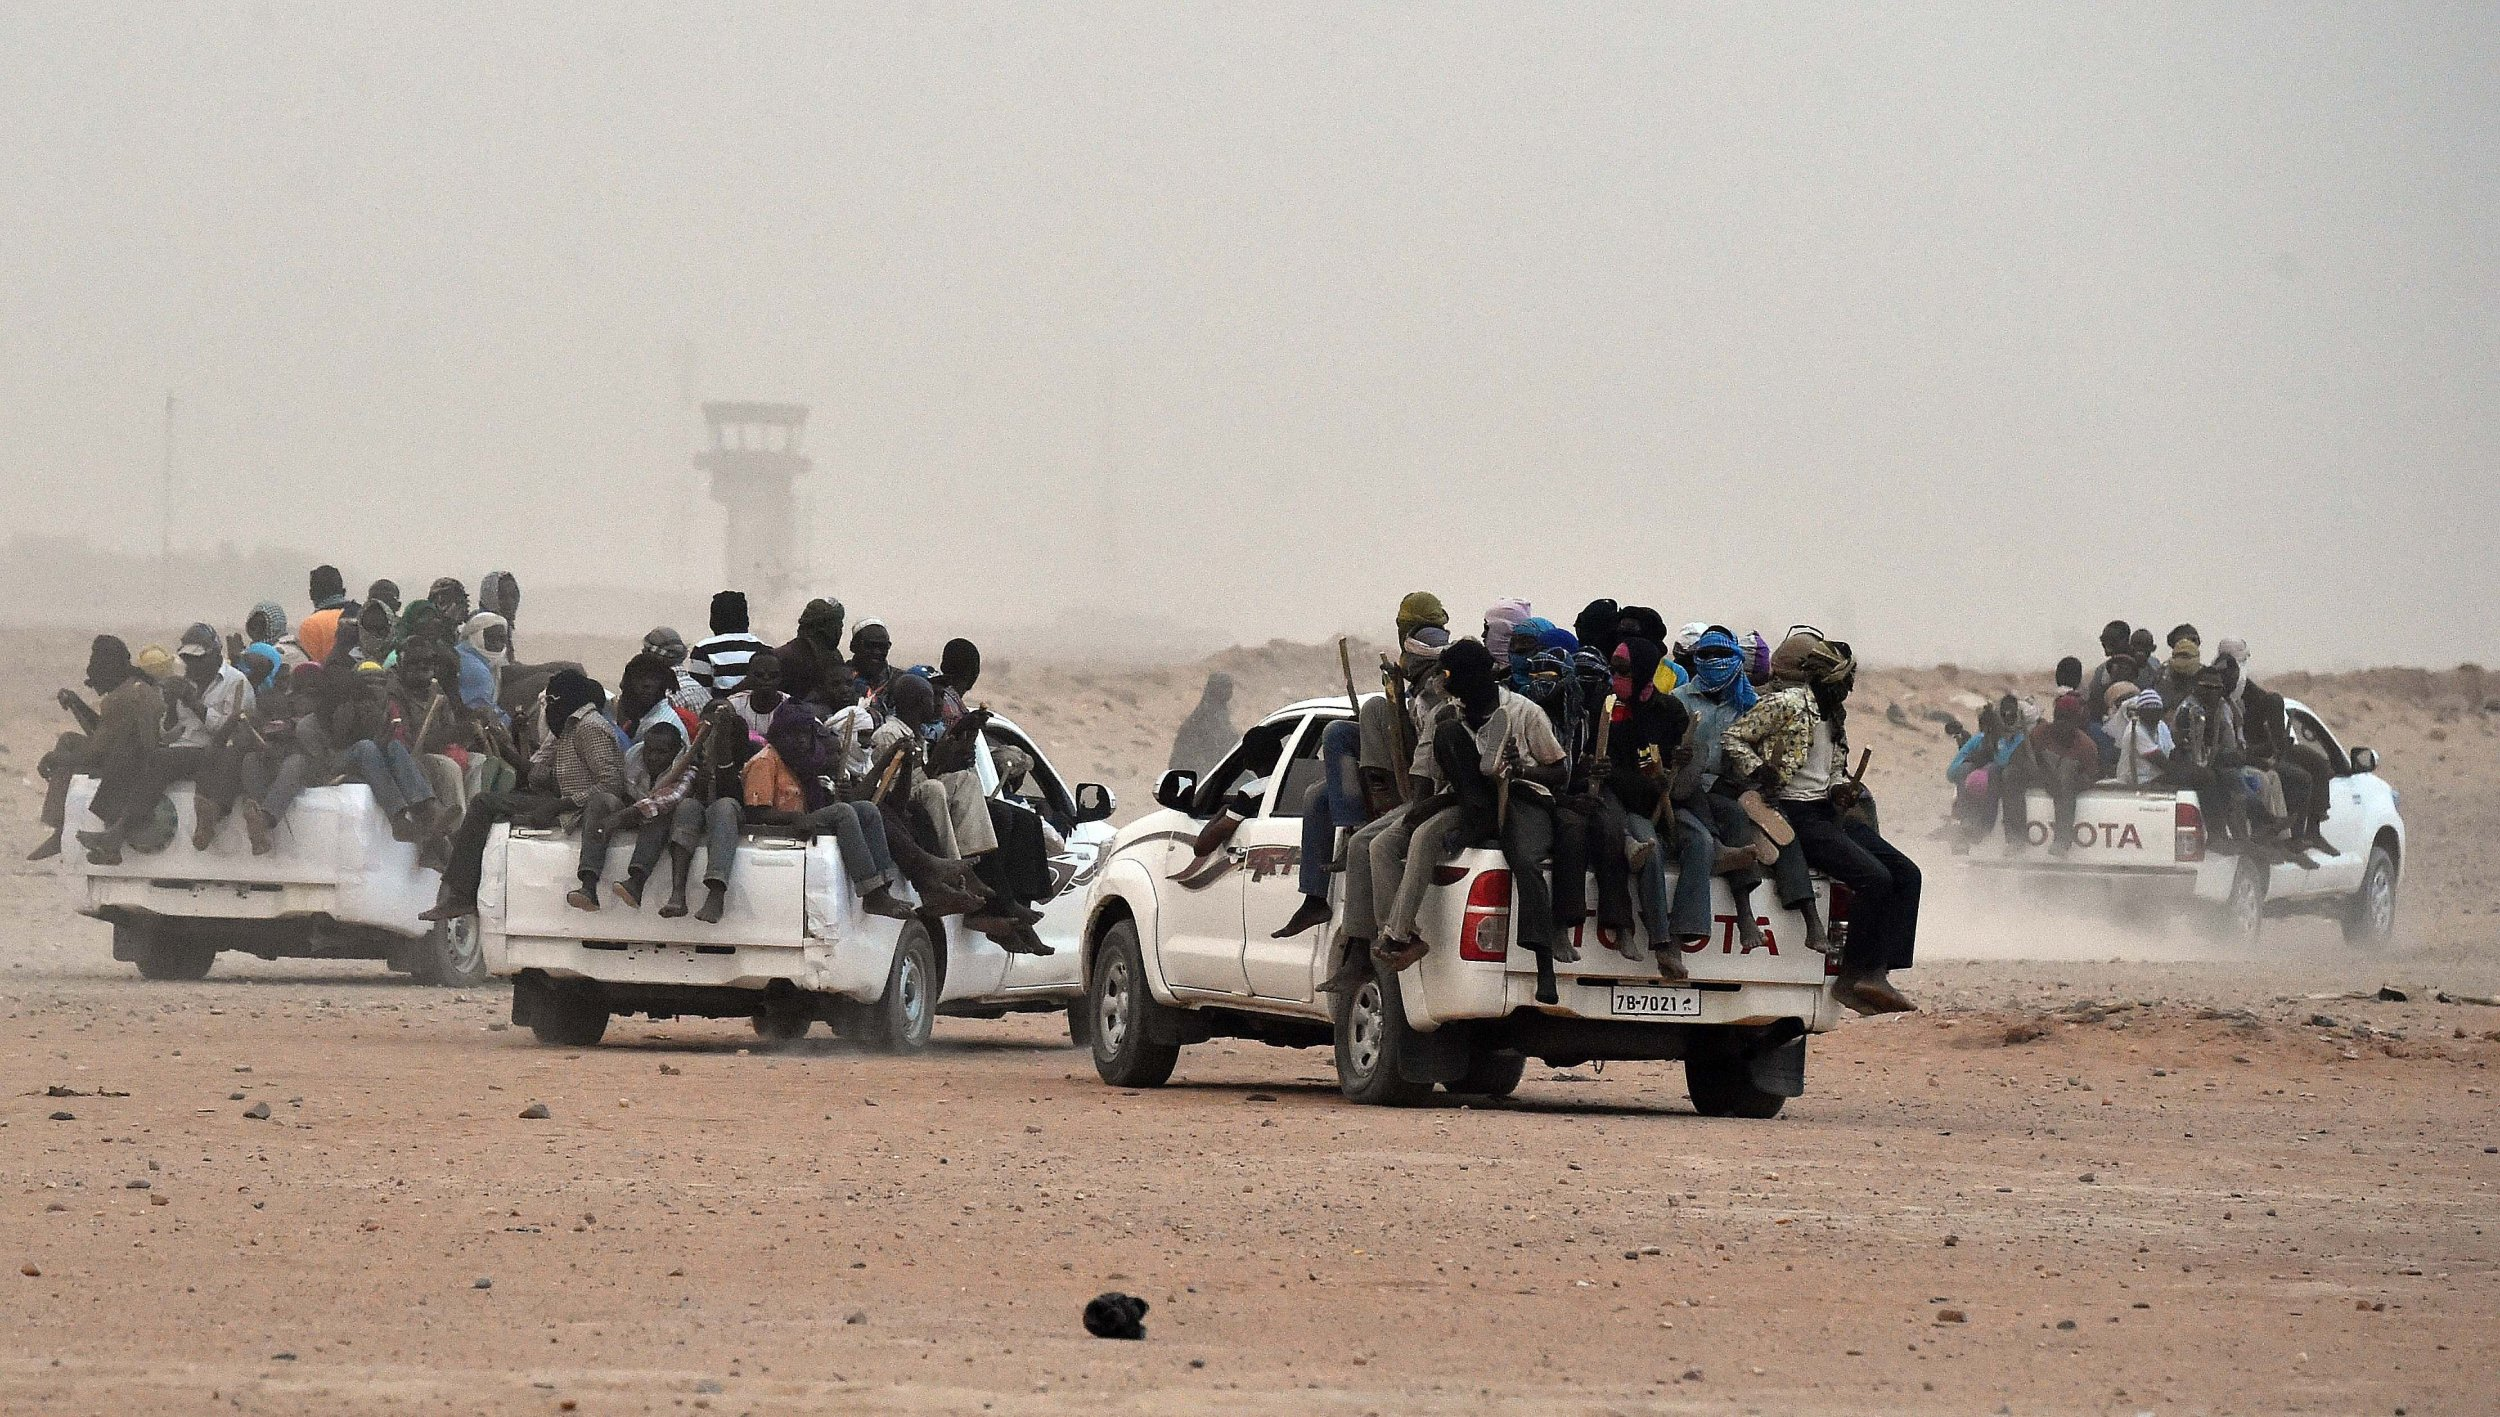 Agadez migrants en route to Libya